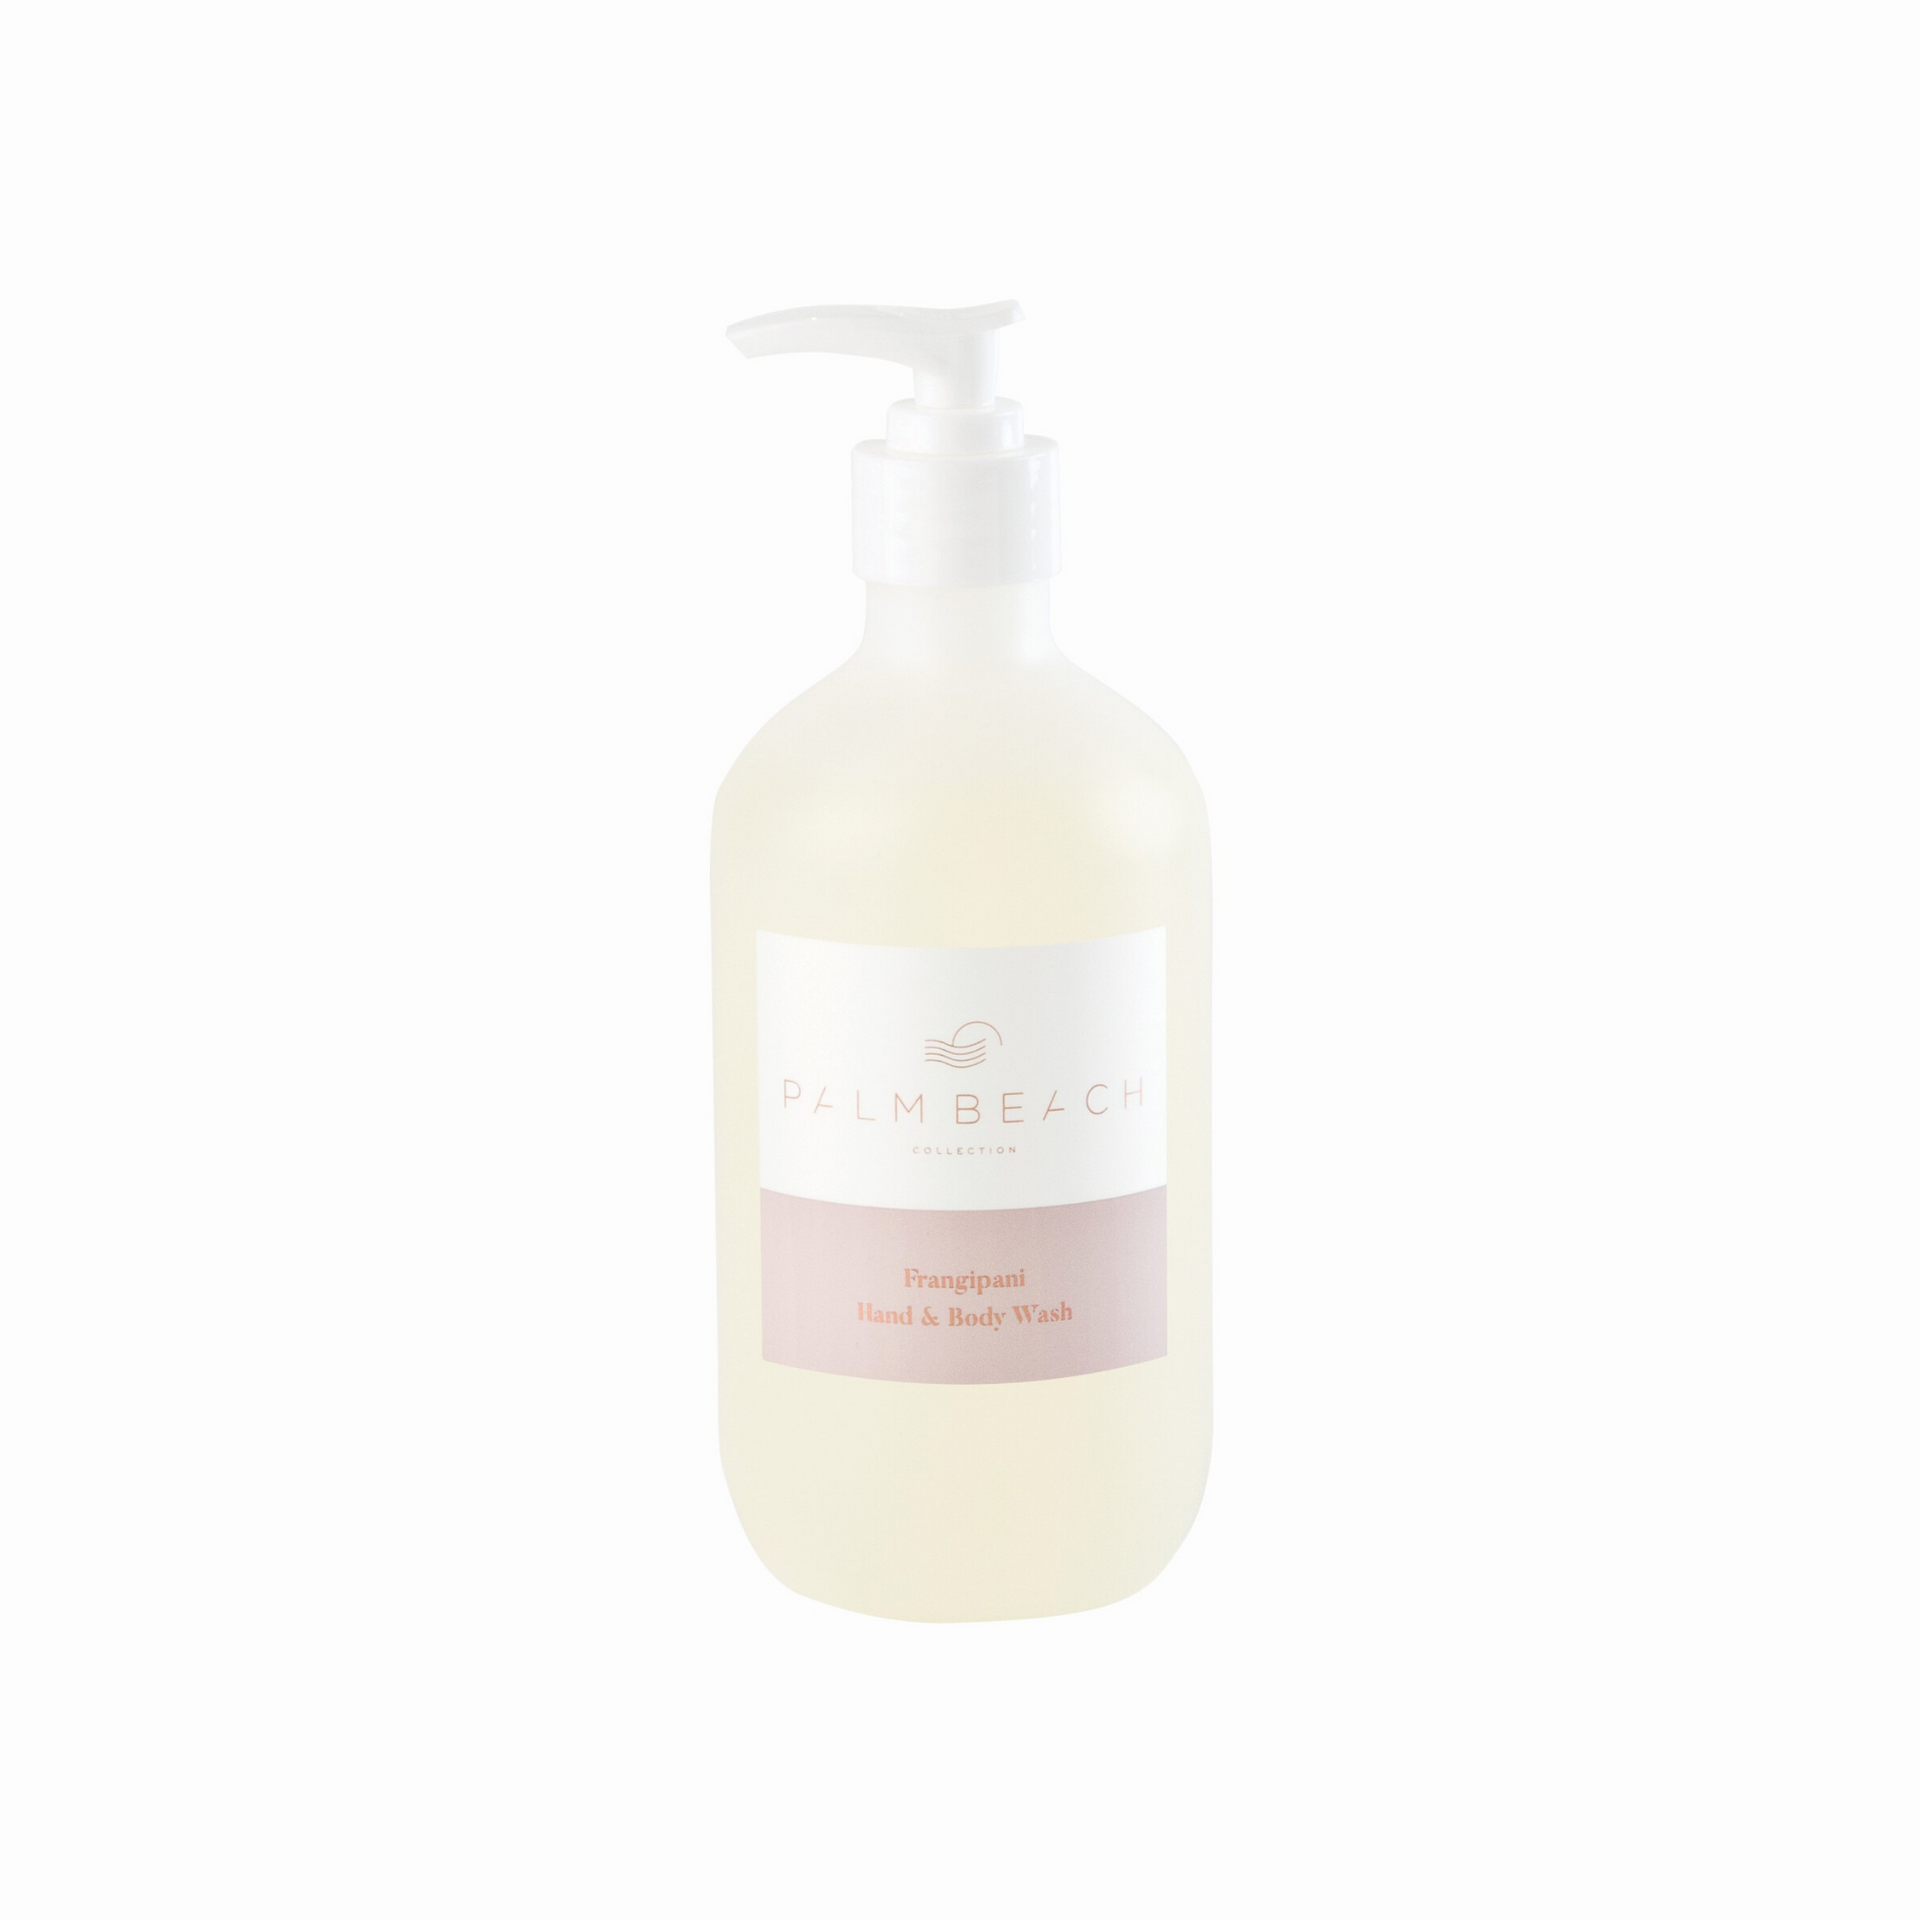 Frangipani <br> 500ml Hand & Body Wash